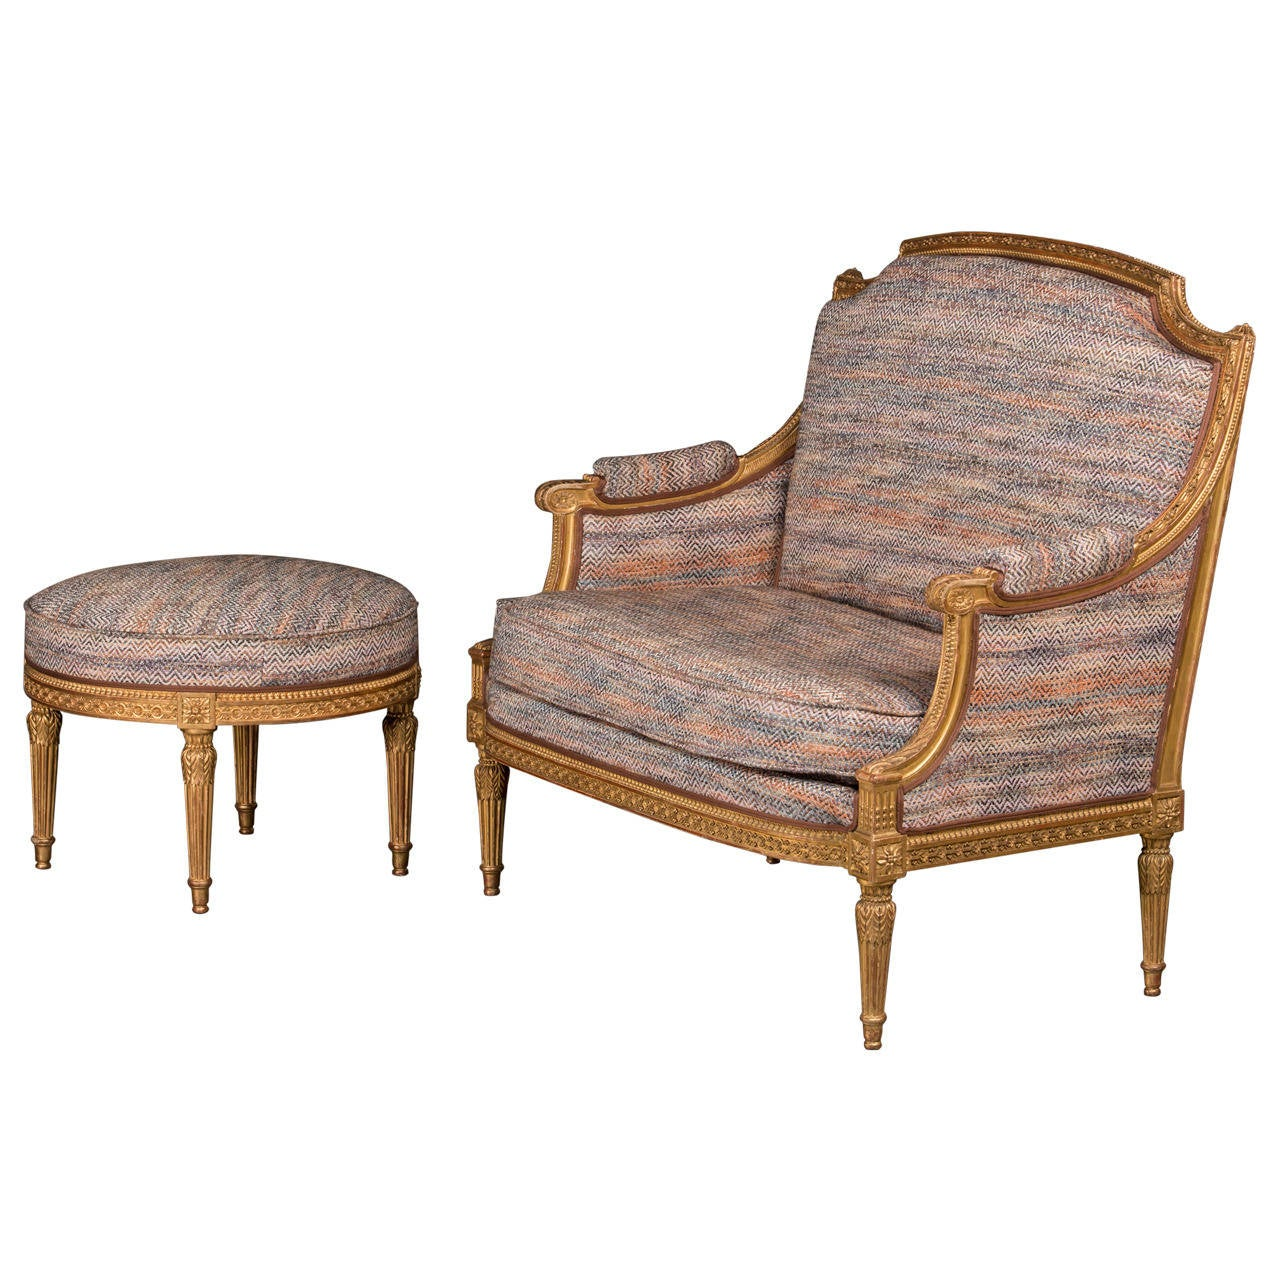 Canap and ottoman louis xvi style gilt russia 1860 at for Canape furniture